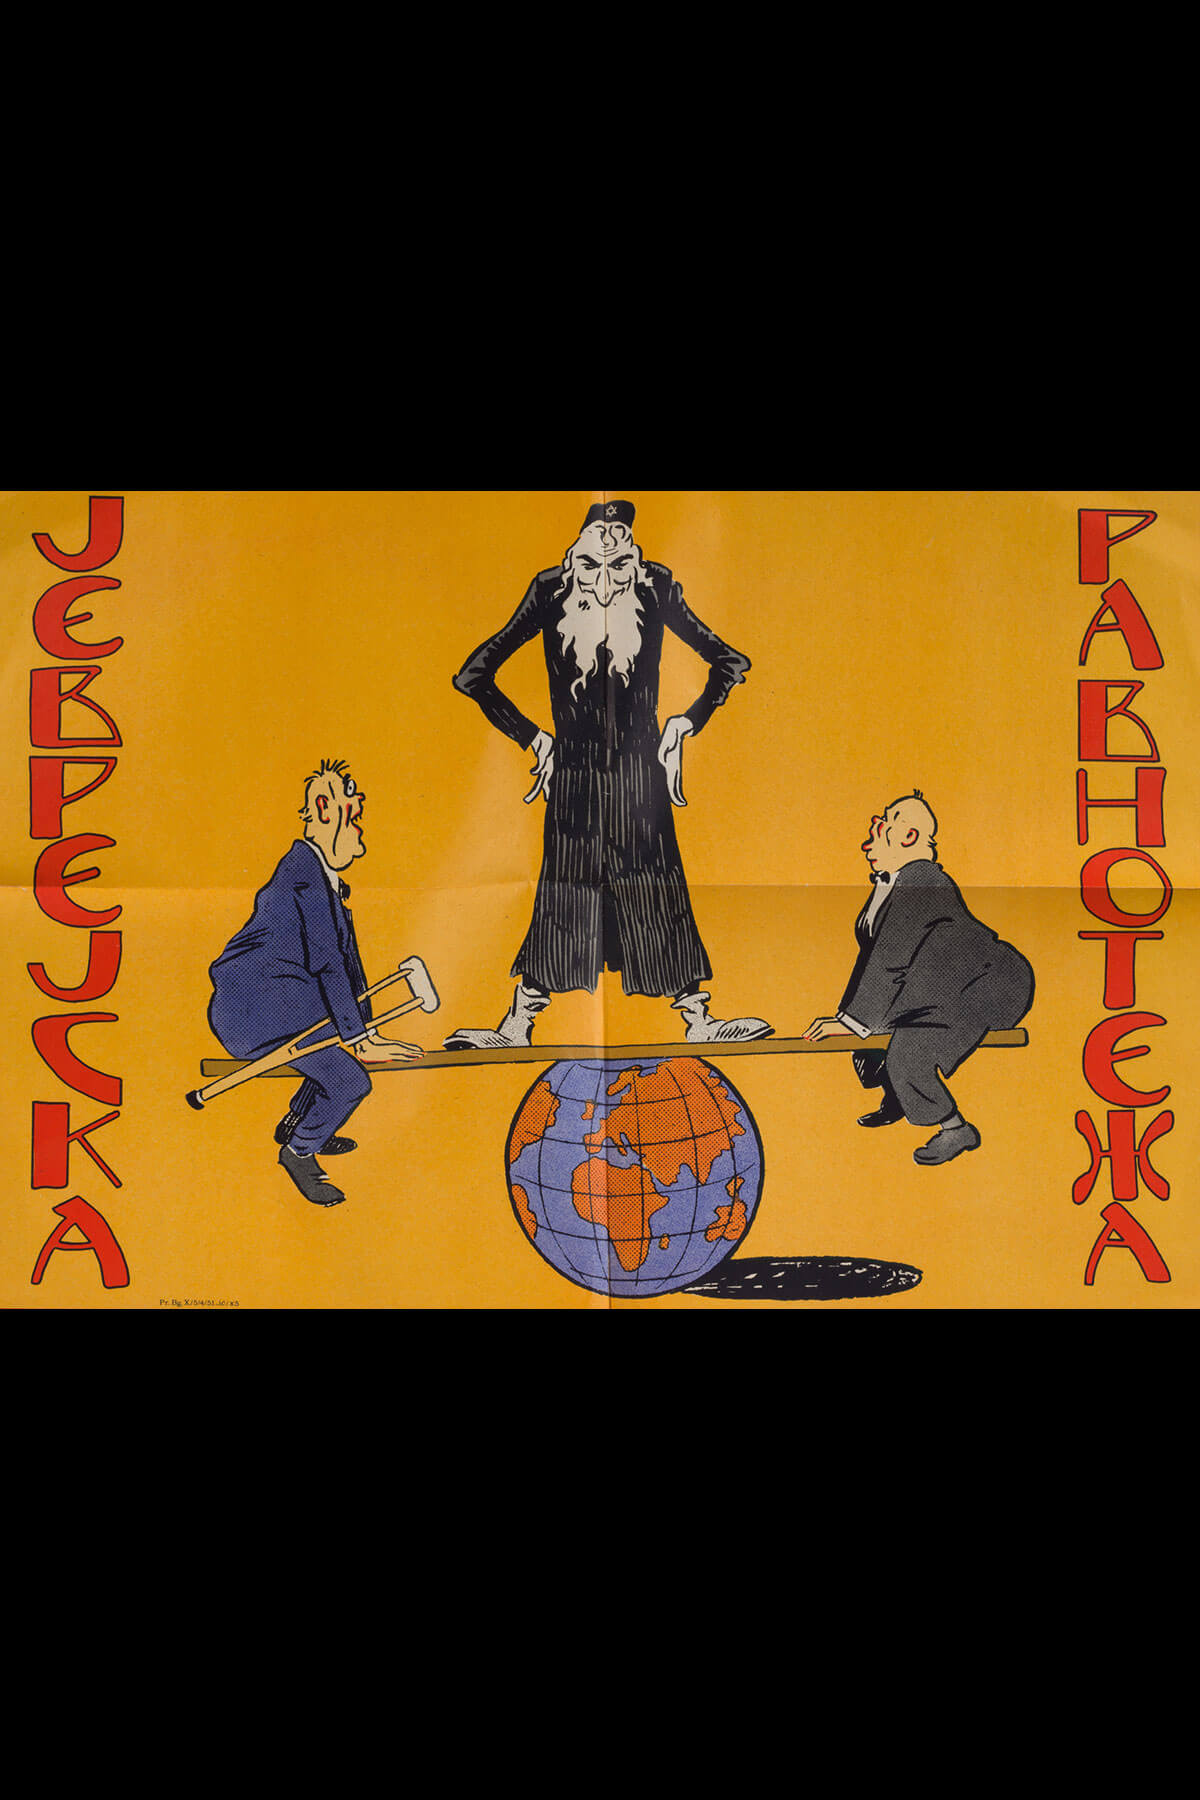 182. An Anti-semitic Poster Published by the Yugoslav Nazi Party